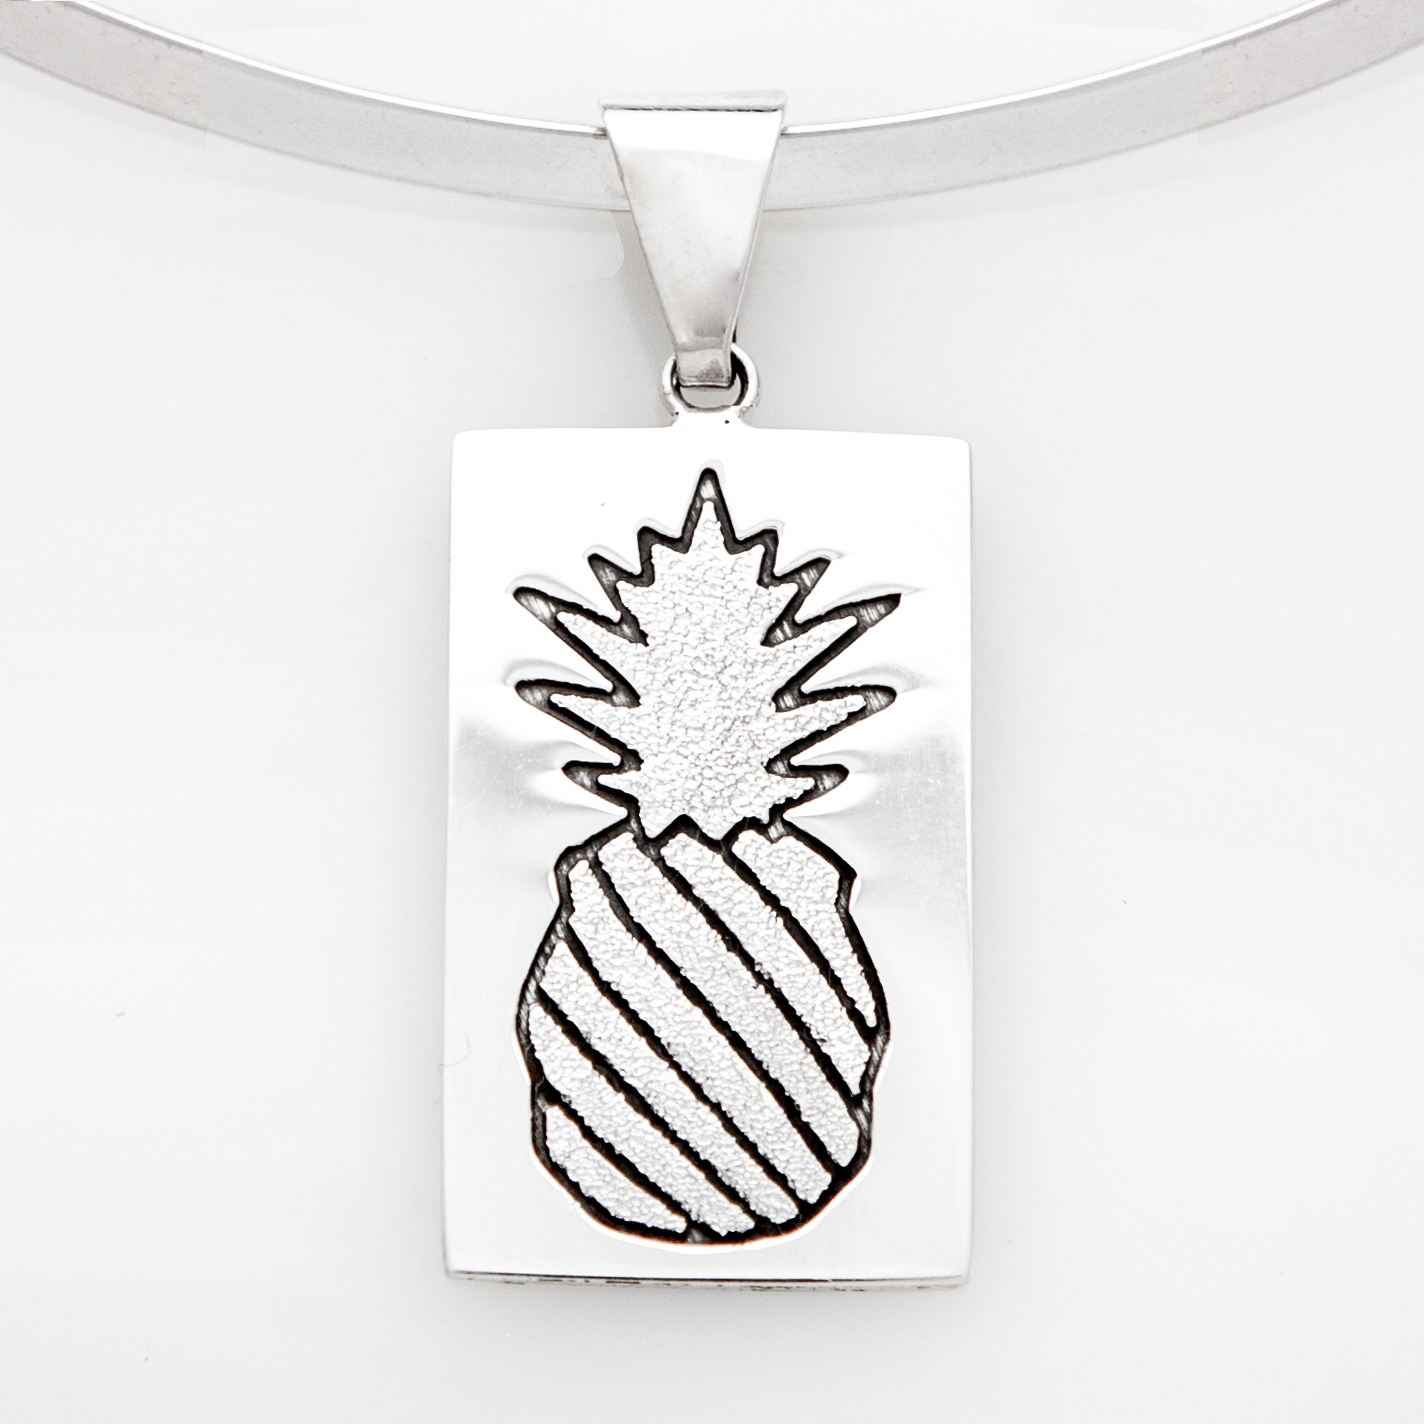 Crowned Pineapple Quilt Jewelry Large Pendant